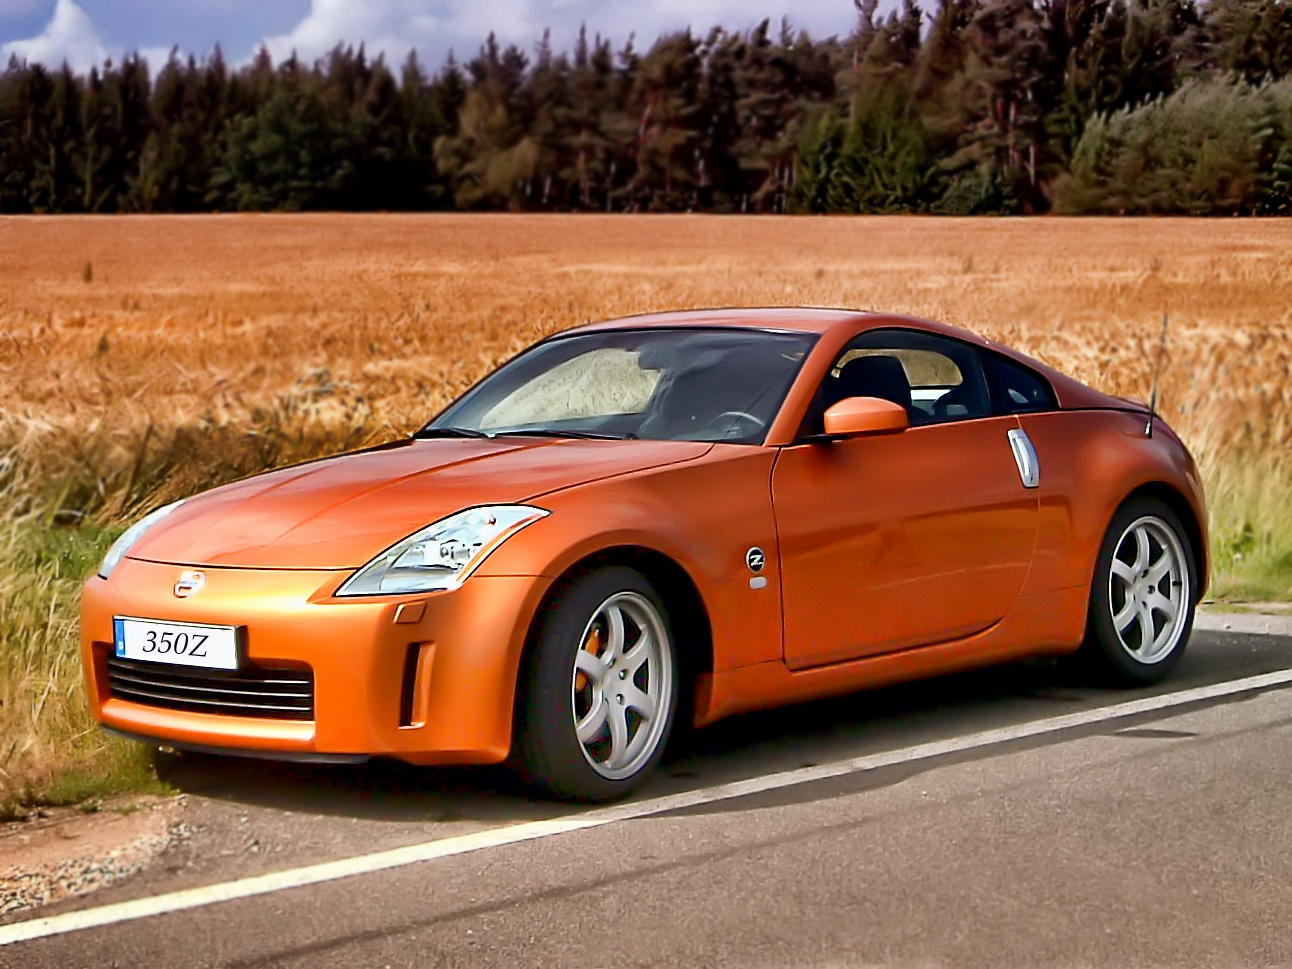 Nissan 350z Car Technical Data Car Specifications Vehicle Fuel Consumption Information